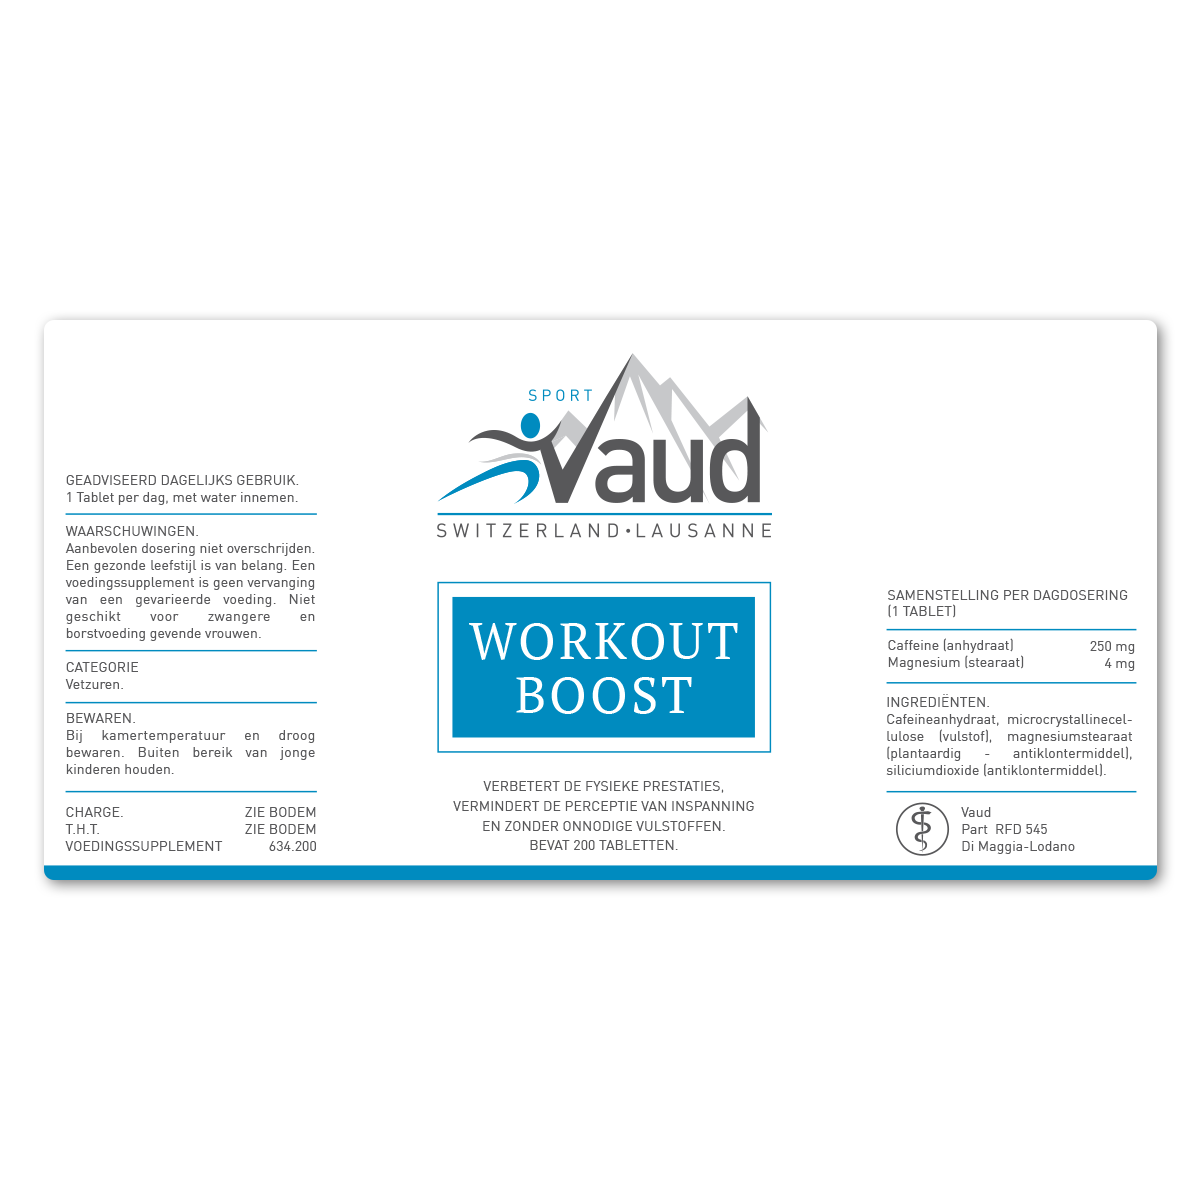 workout-boost-vaud